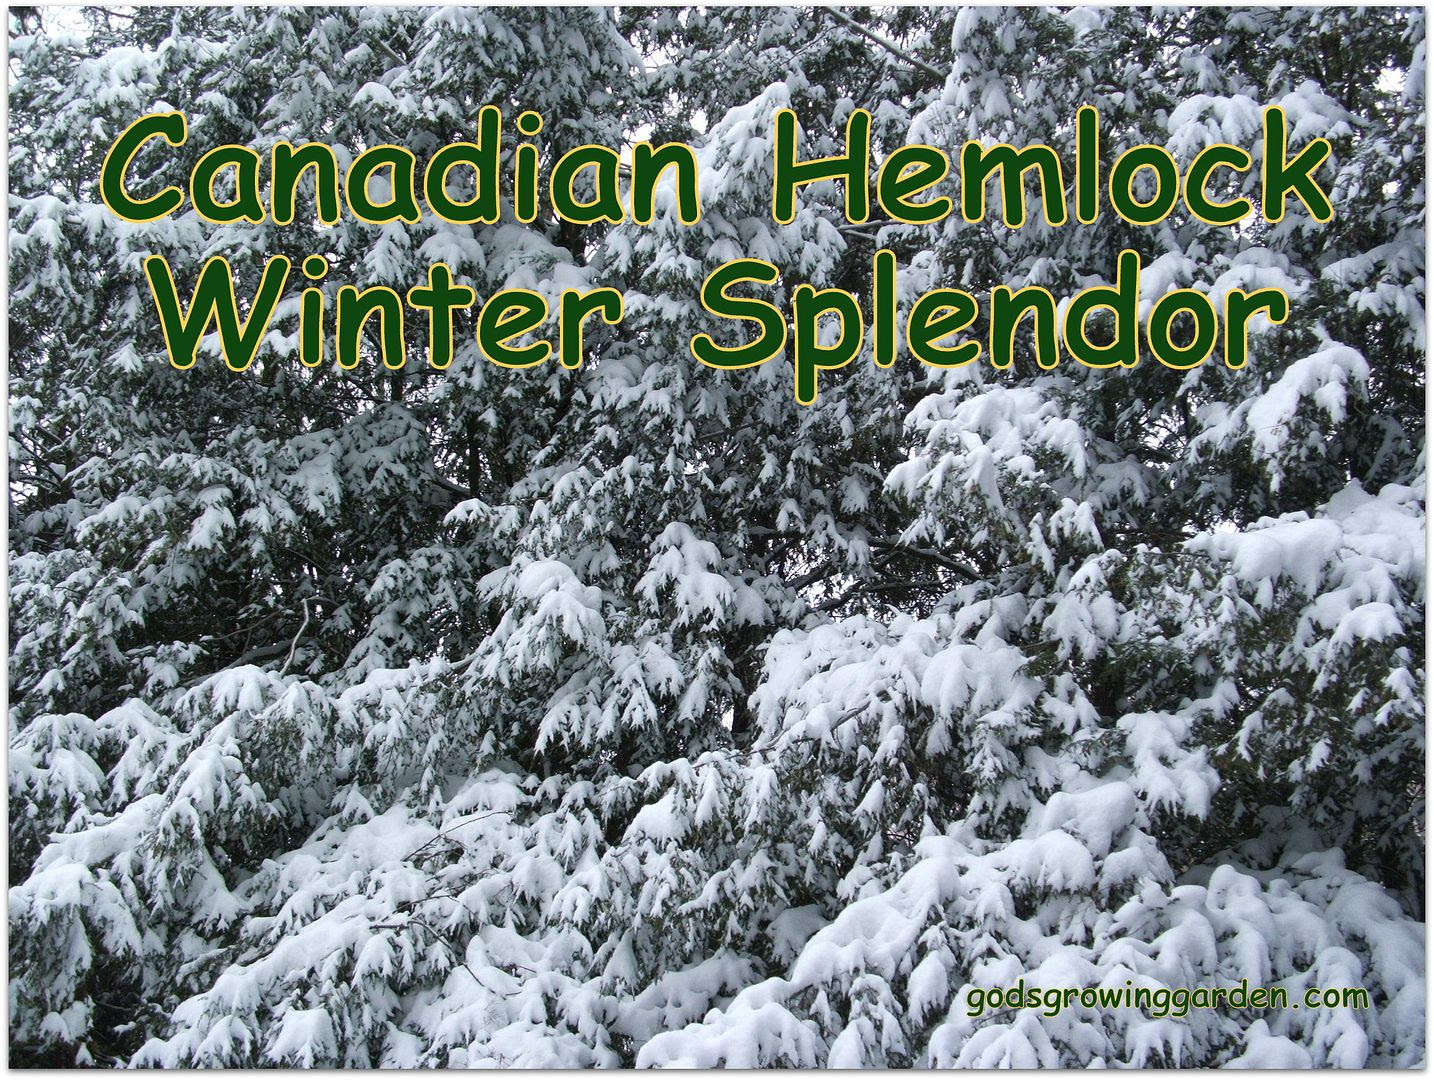 Canadian Hemlock by Angie Ouellette-Tower for godsgrowinggarden.com photo 008_zps9b034607.jpg